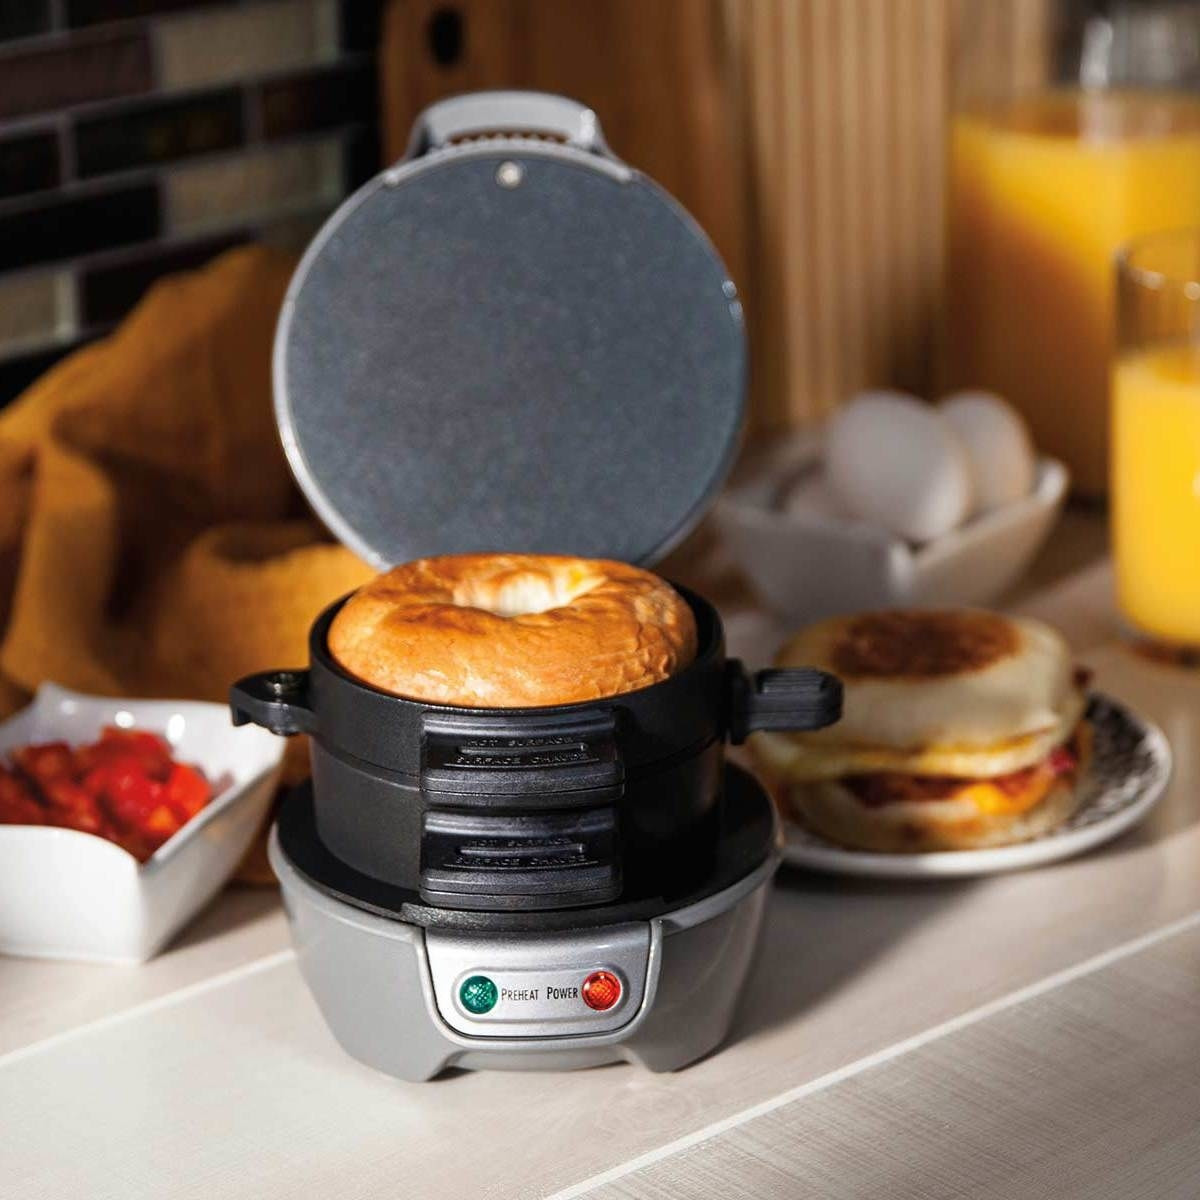 The silver sandwich maker with a bagel slice loaded on the top cooking plate